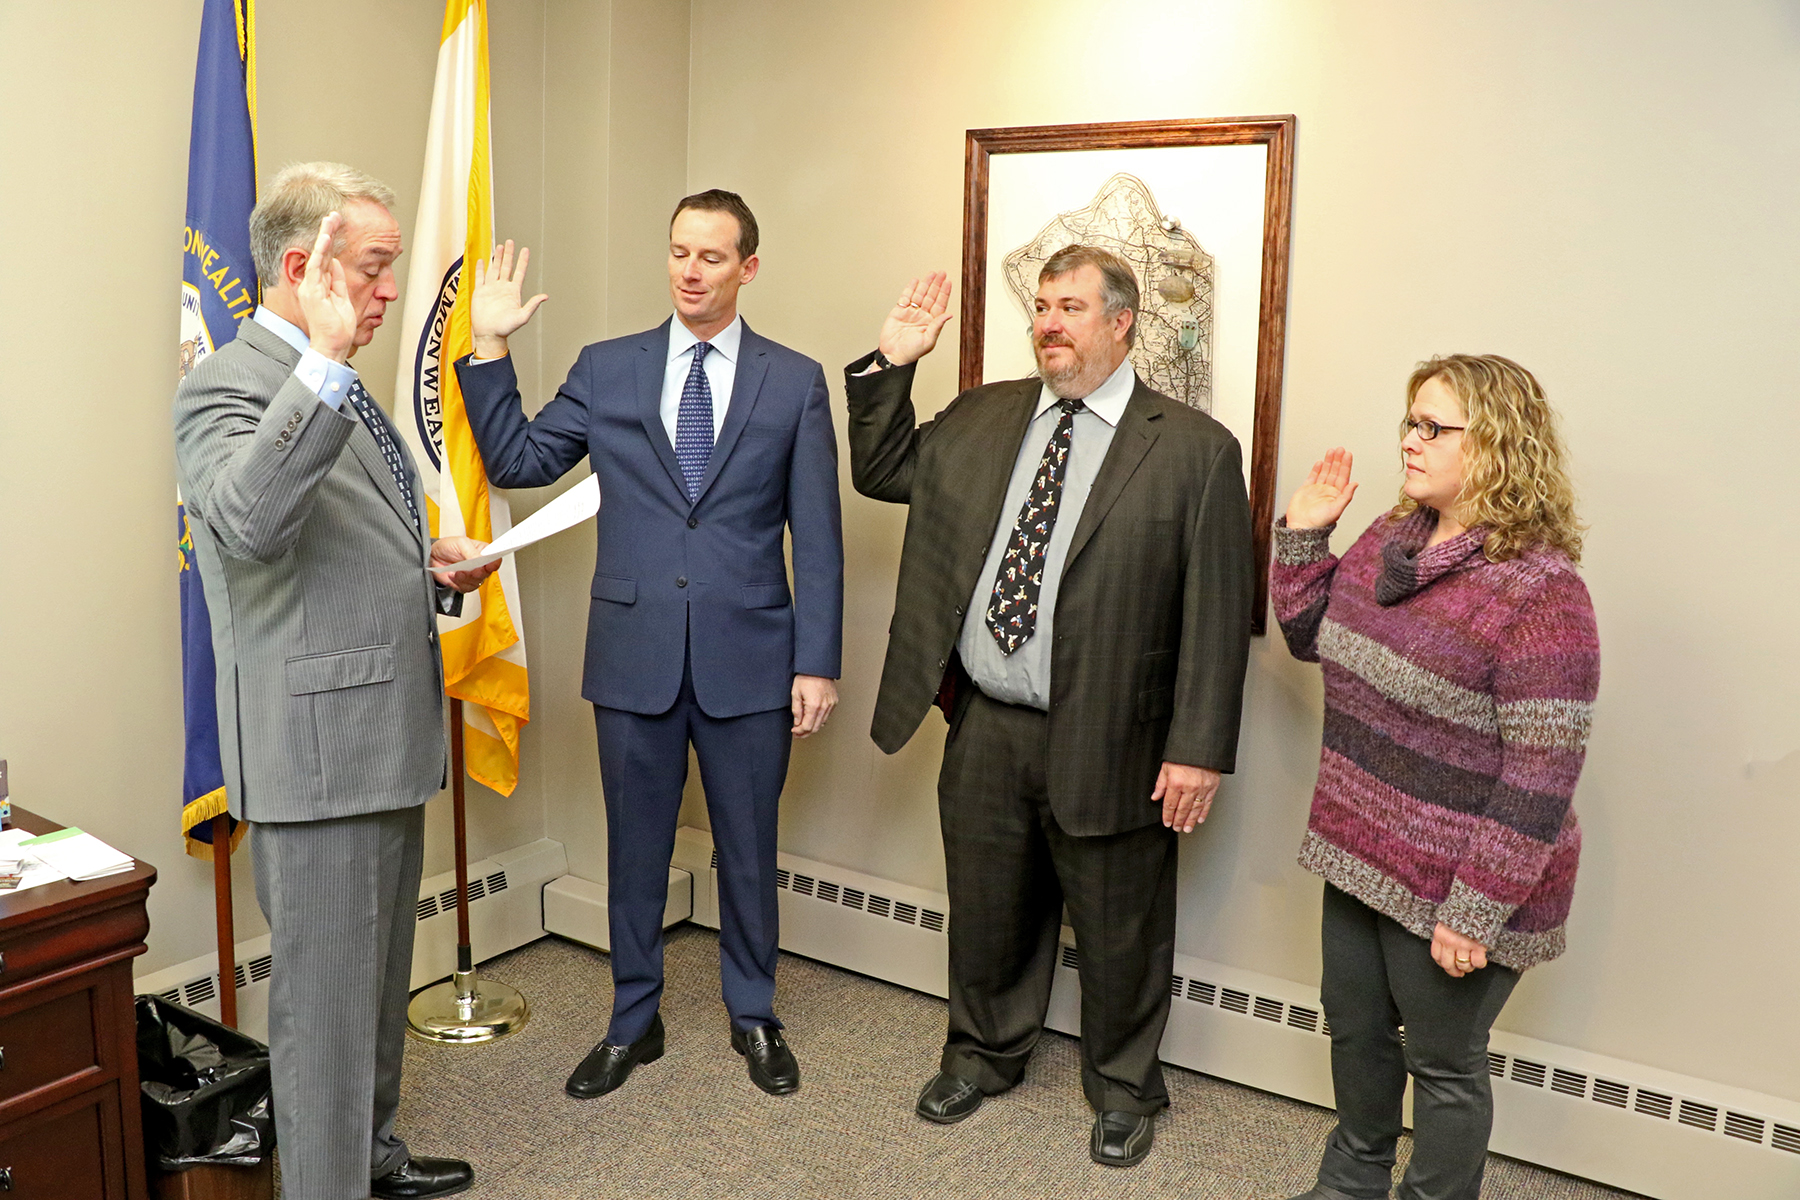 School Board swearing in